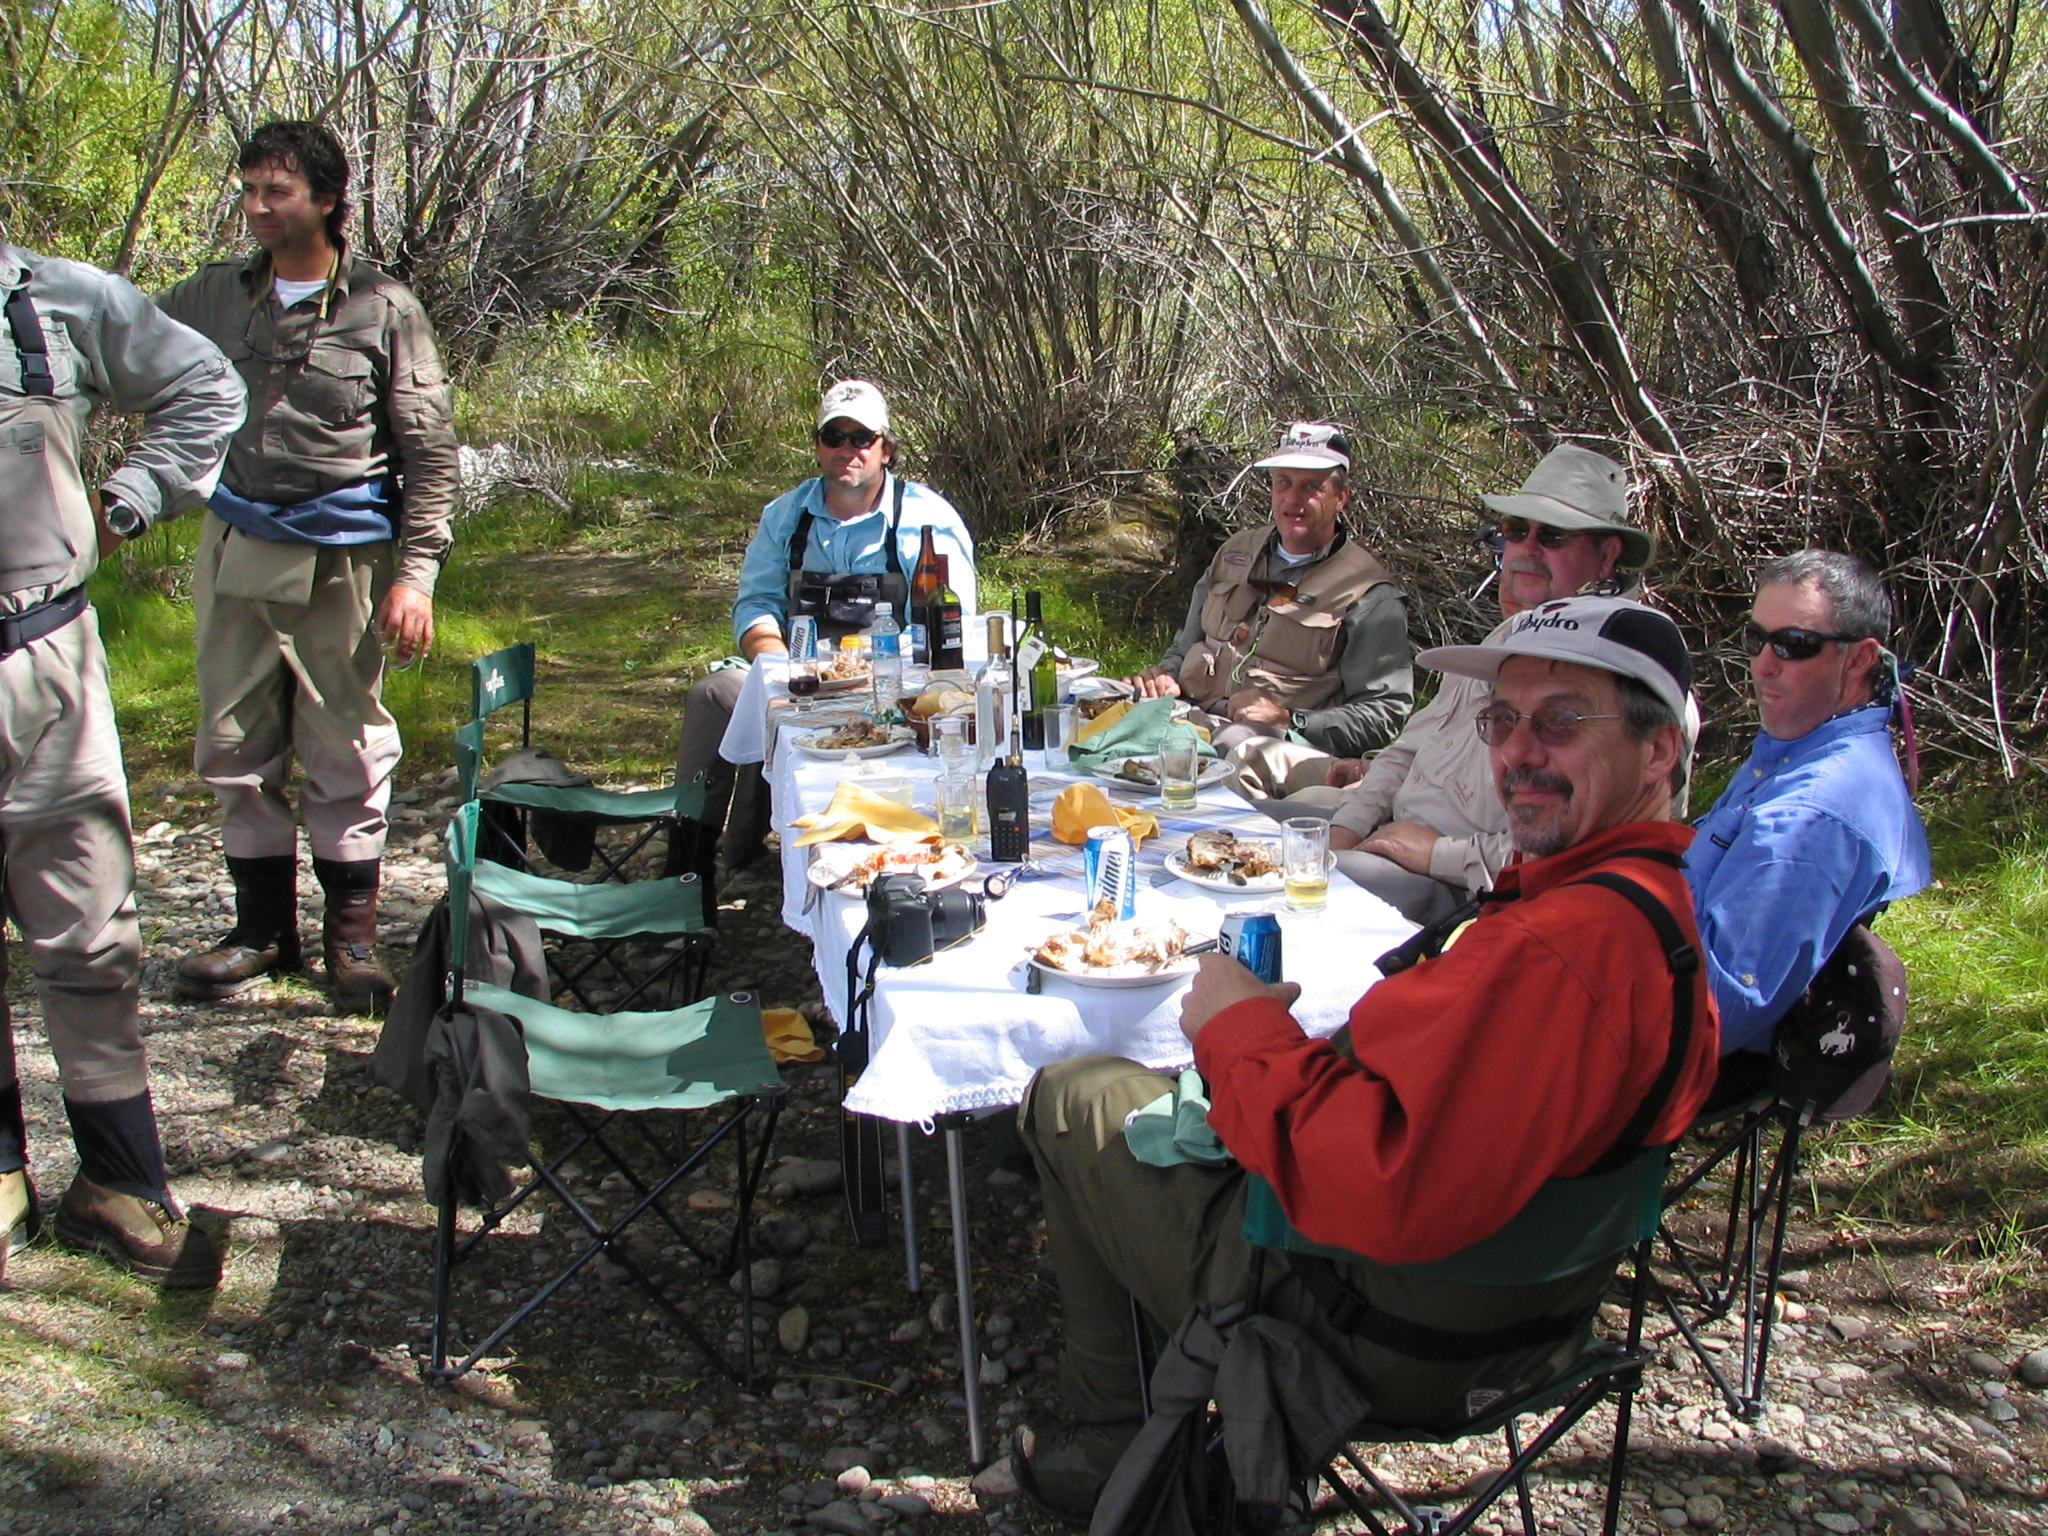 Even the mid-day meals on the river are special. Tables and chairs, real plates and silverware, and multiple courses washed down with local beers and wine are standard fair. Perhaps a short siesta and then it's time to fish again!